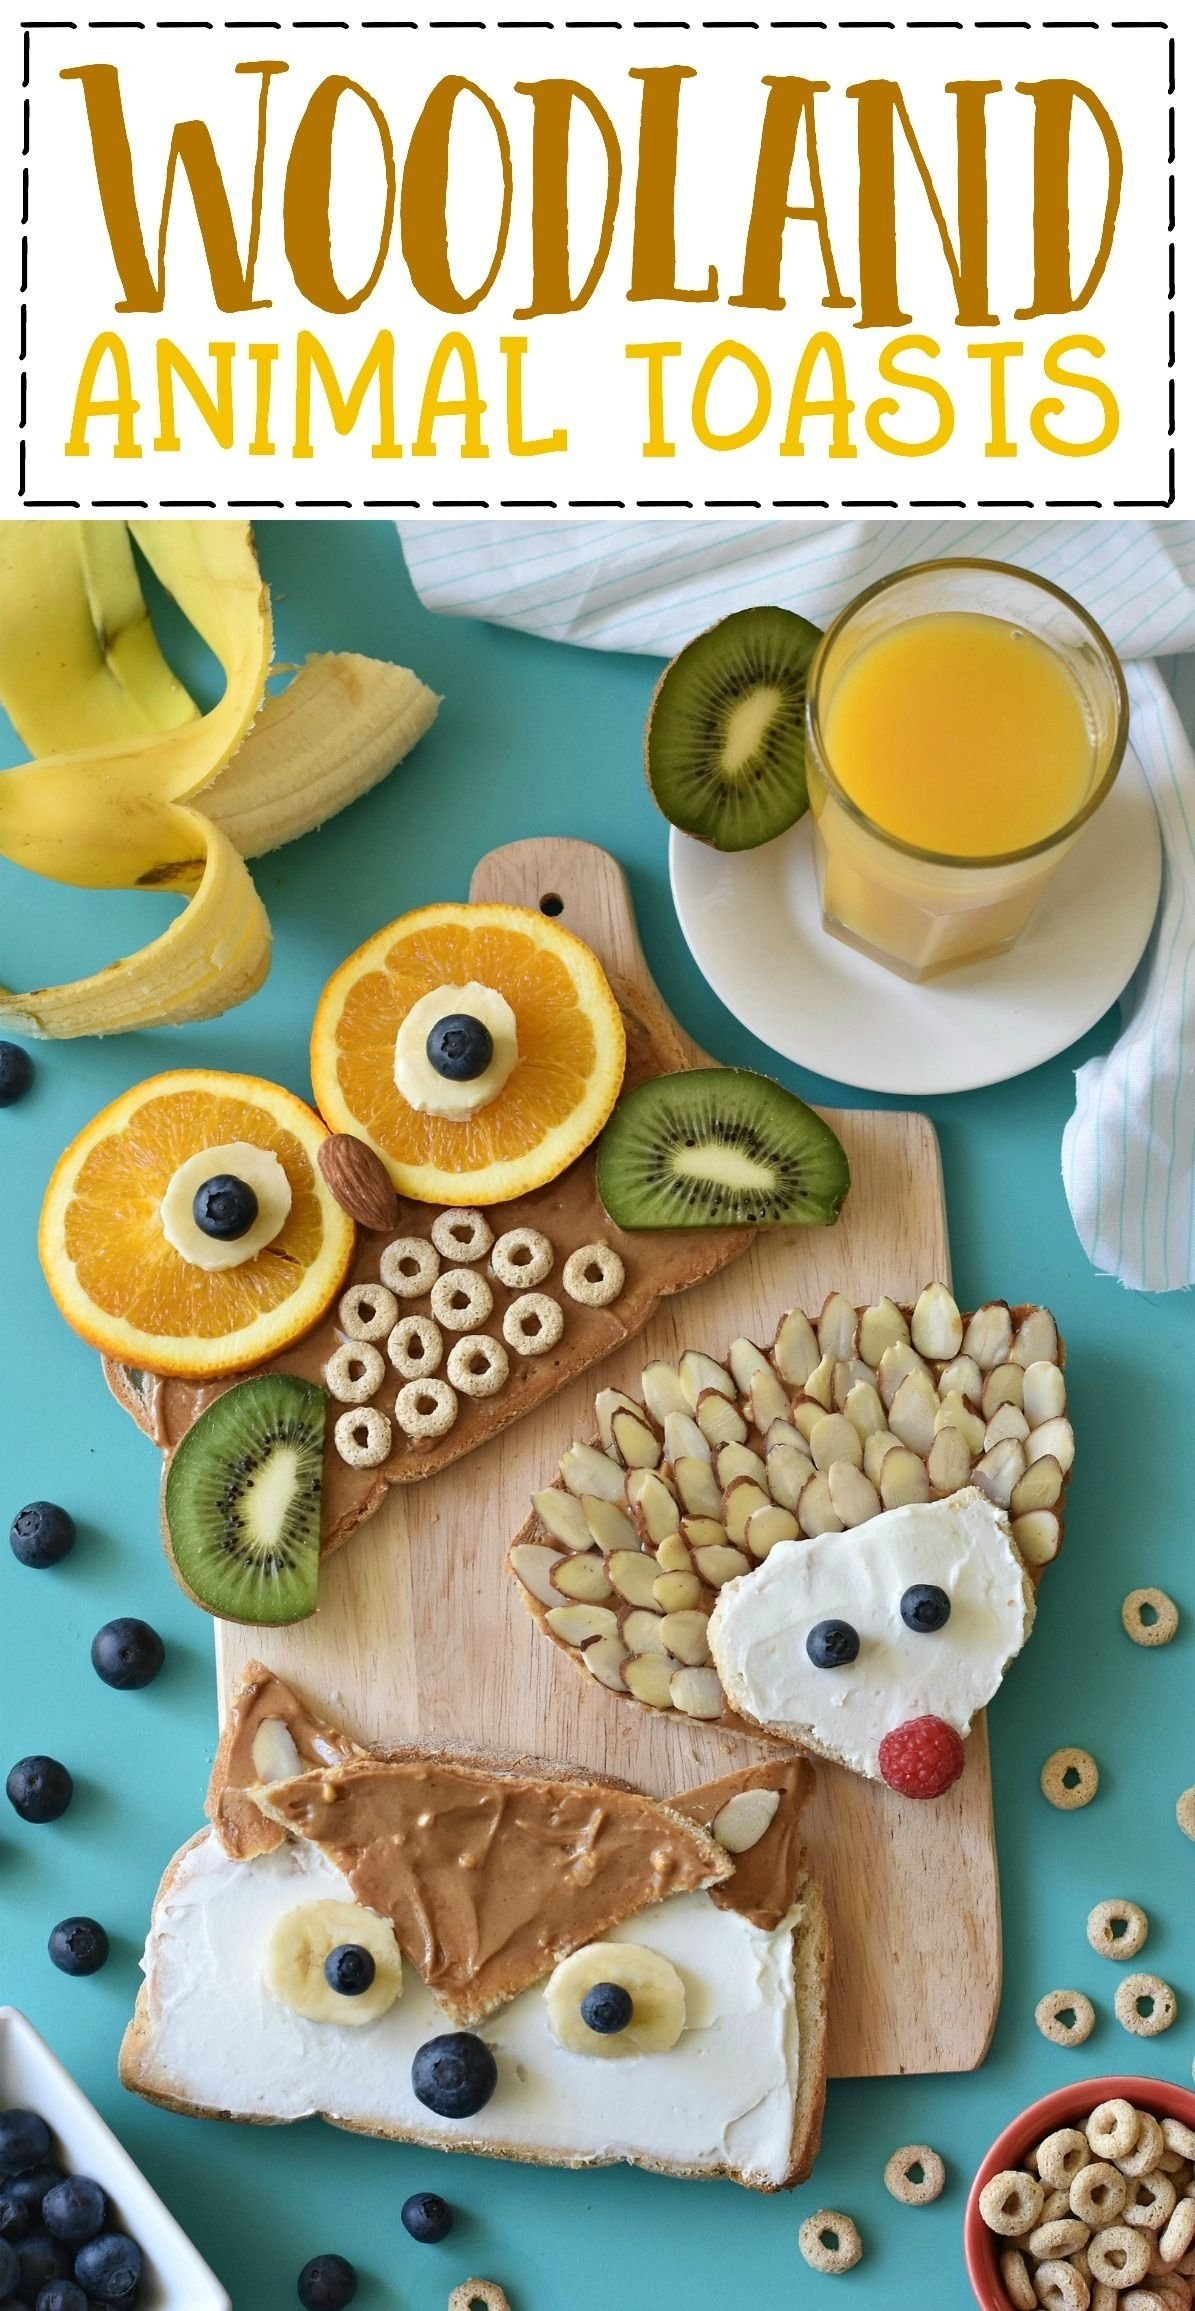 10 Great Gluten Free Breakfast Ideas For Kids woodland animal toast woodland animals hedgehogs and gluten free 2020